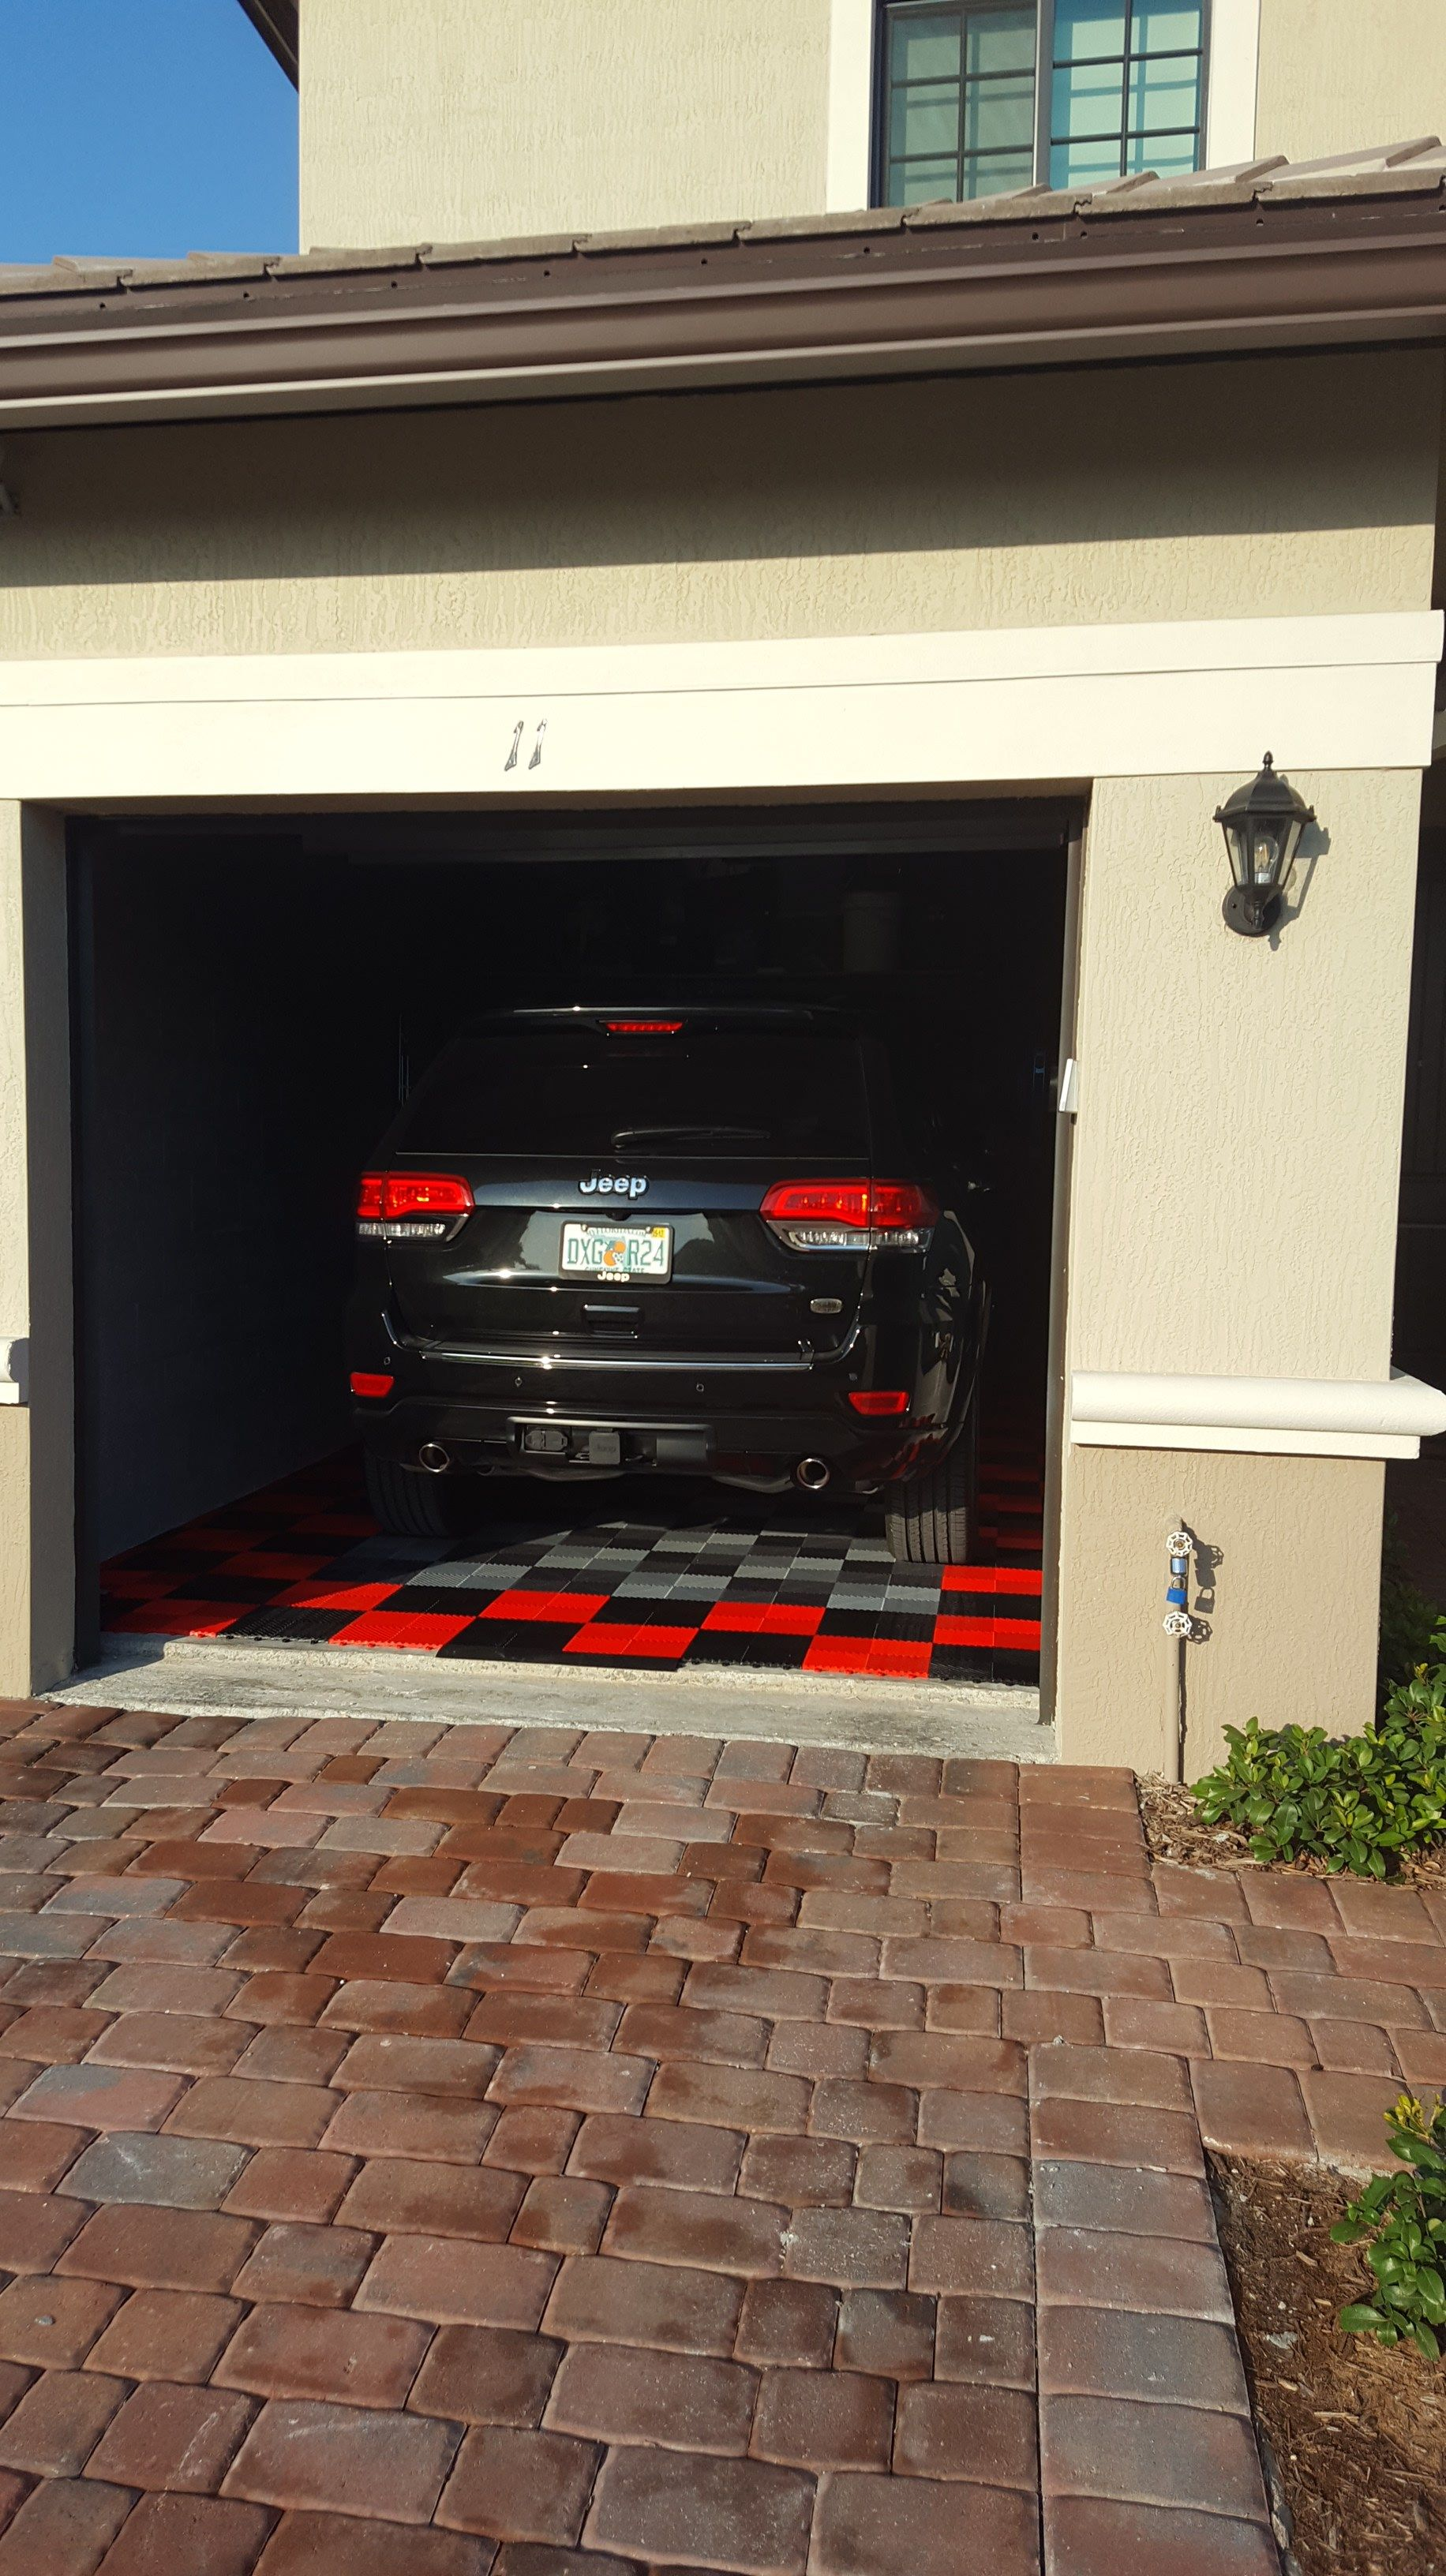 Drymate Garage Floor Mat Review Drymate Garage Floor Mat Video Review Garagefloormats